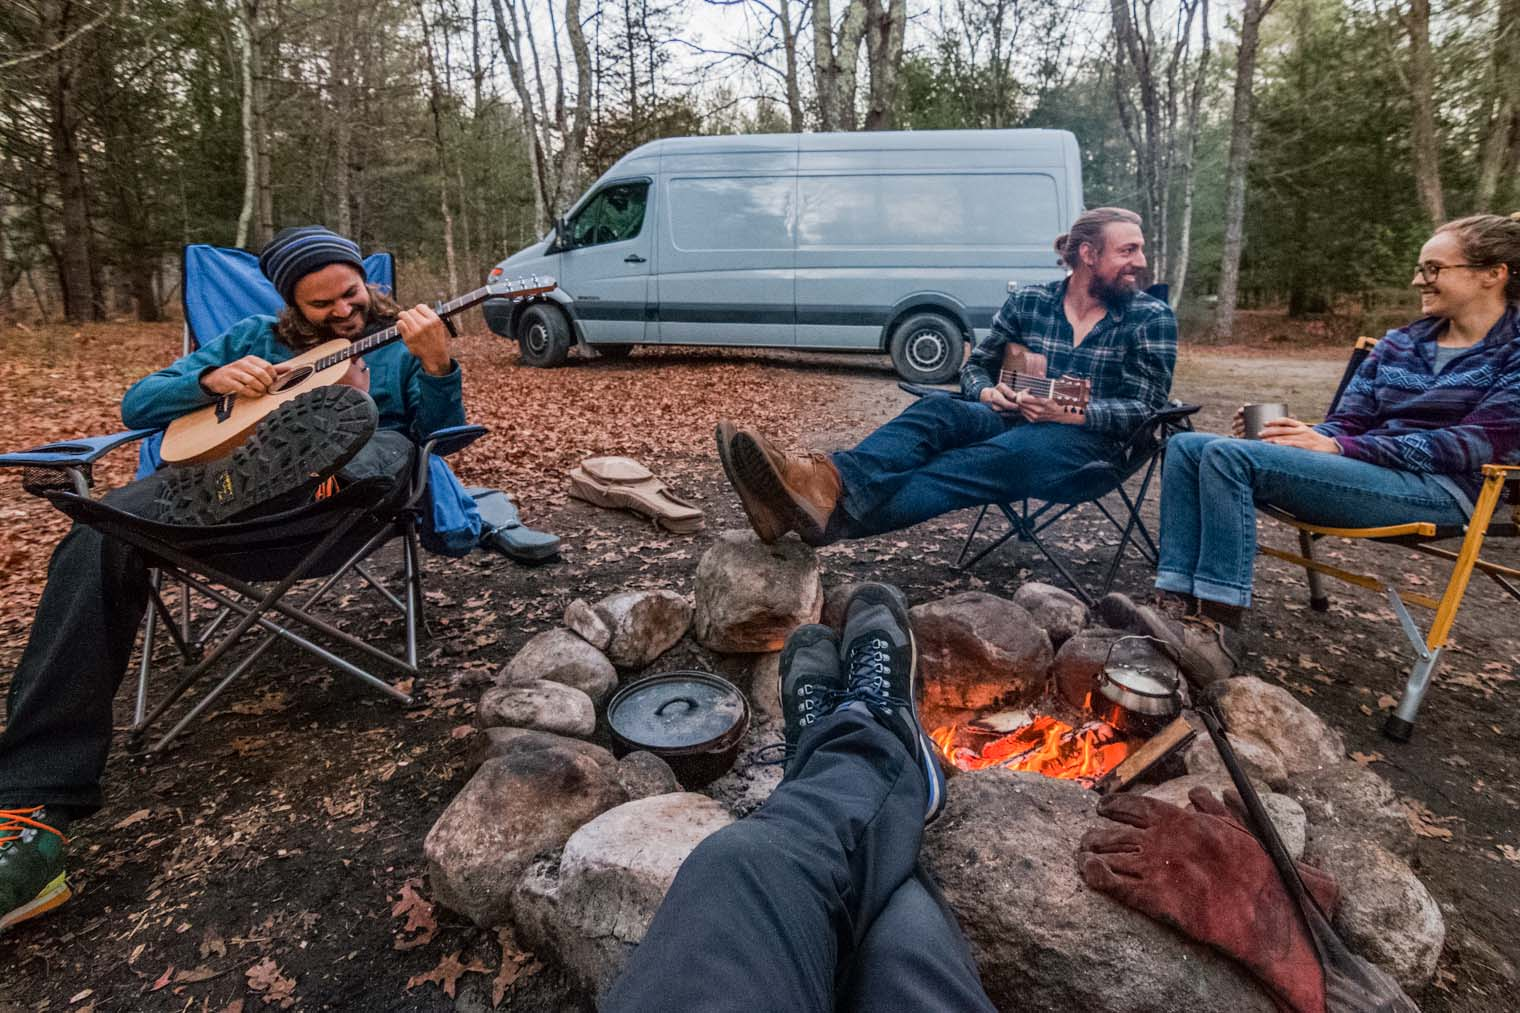 9 Tips for Cooking Thanksgiving While Camping